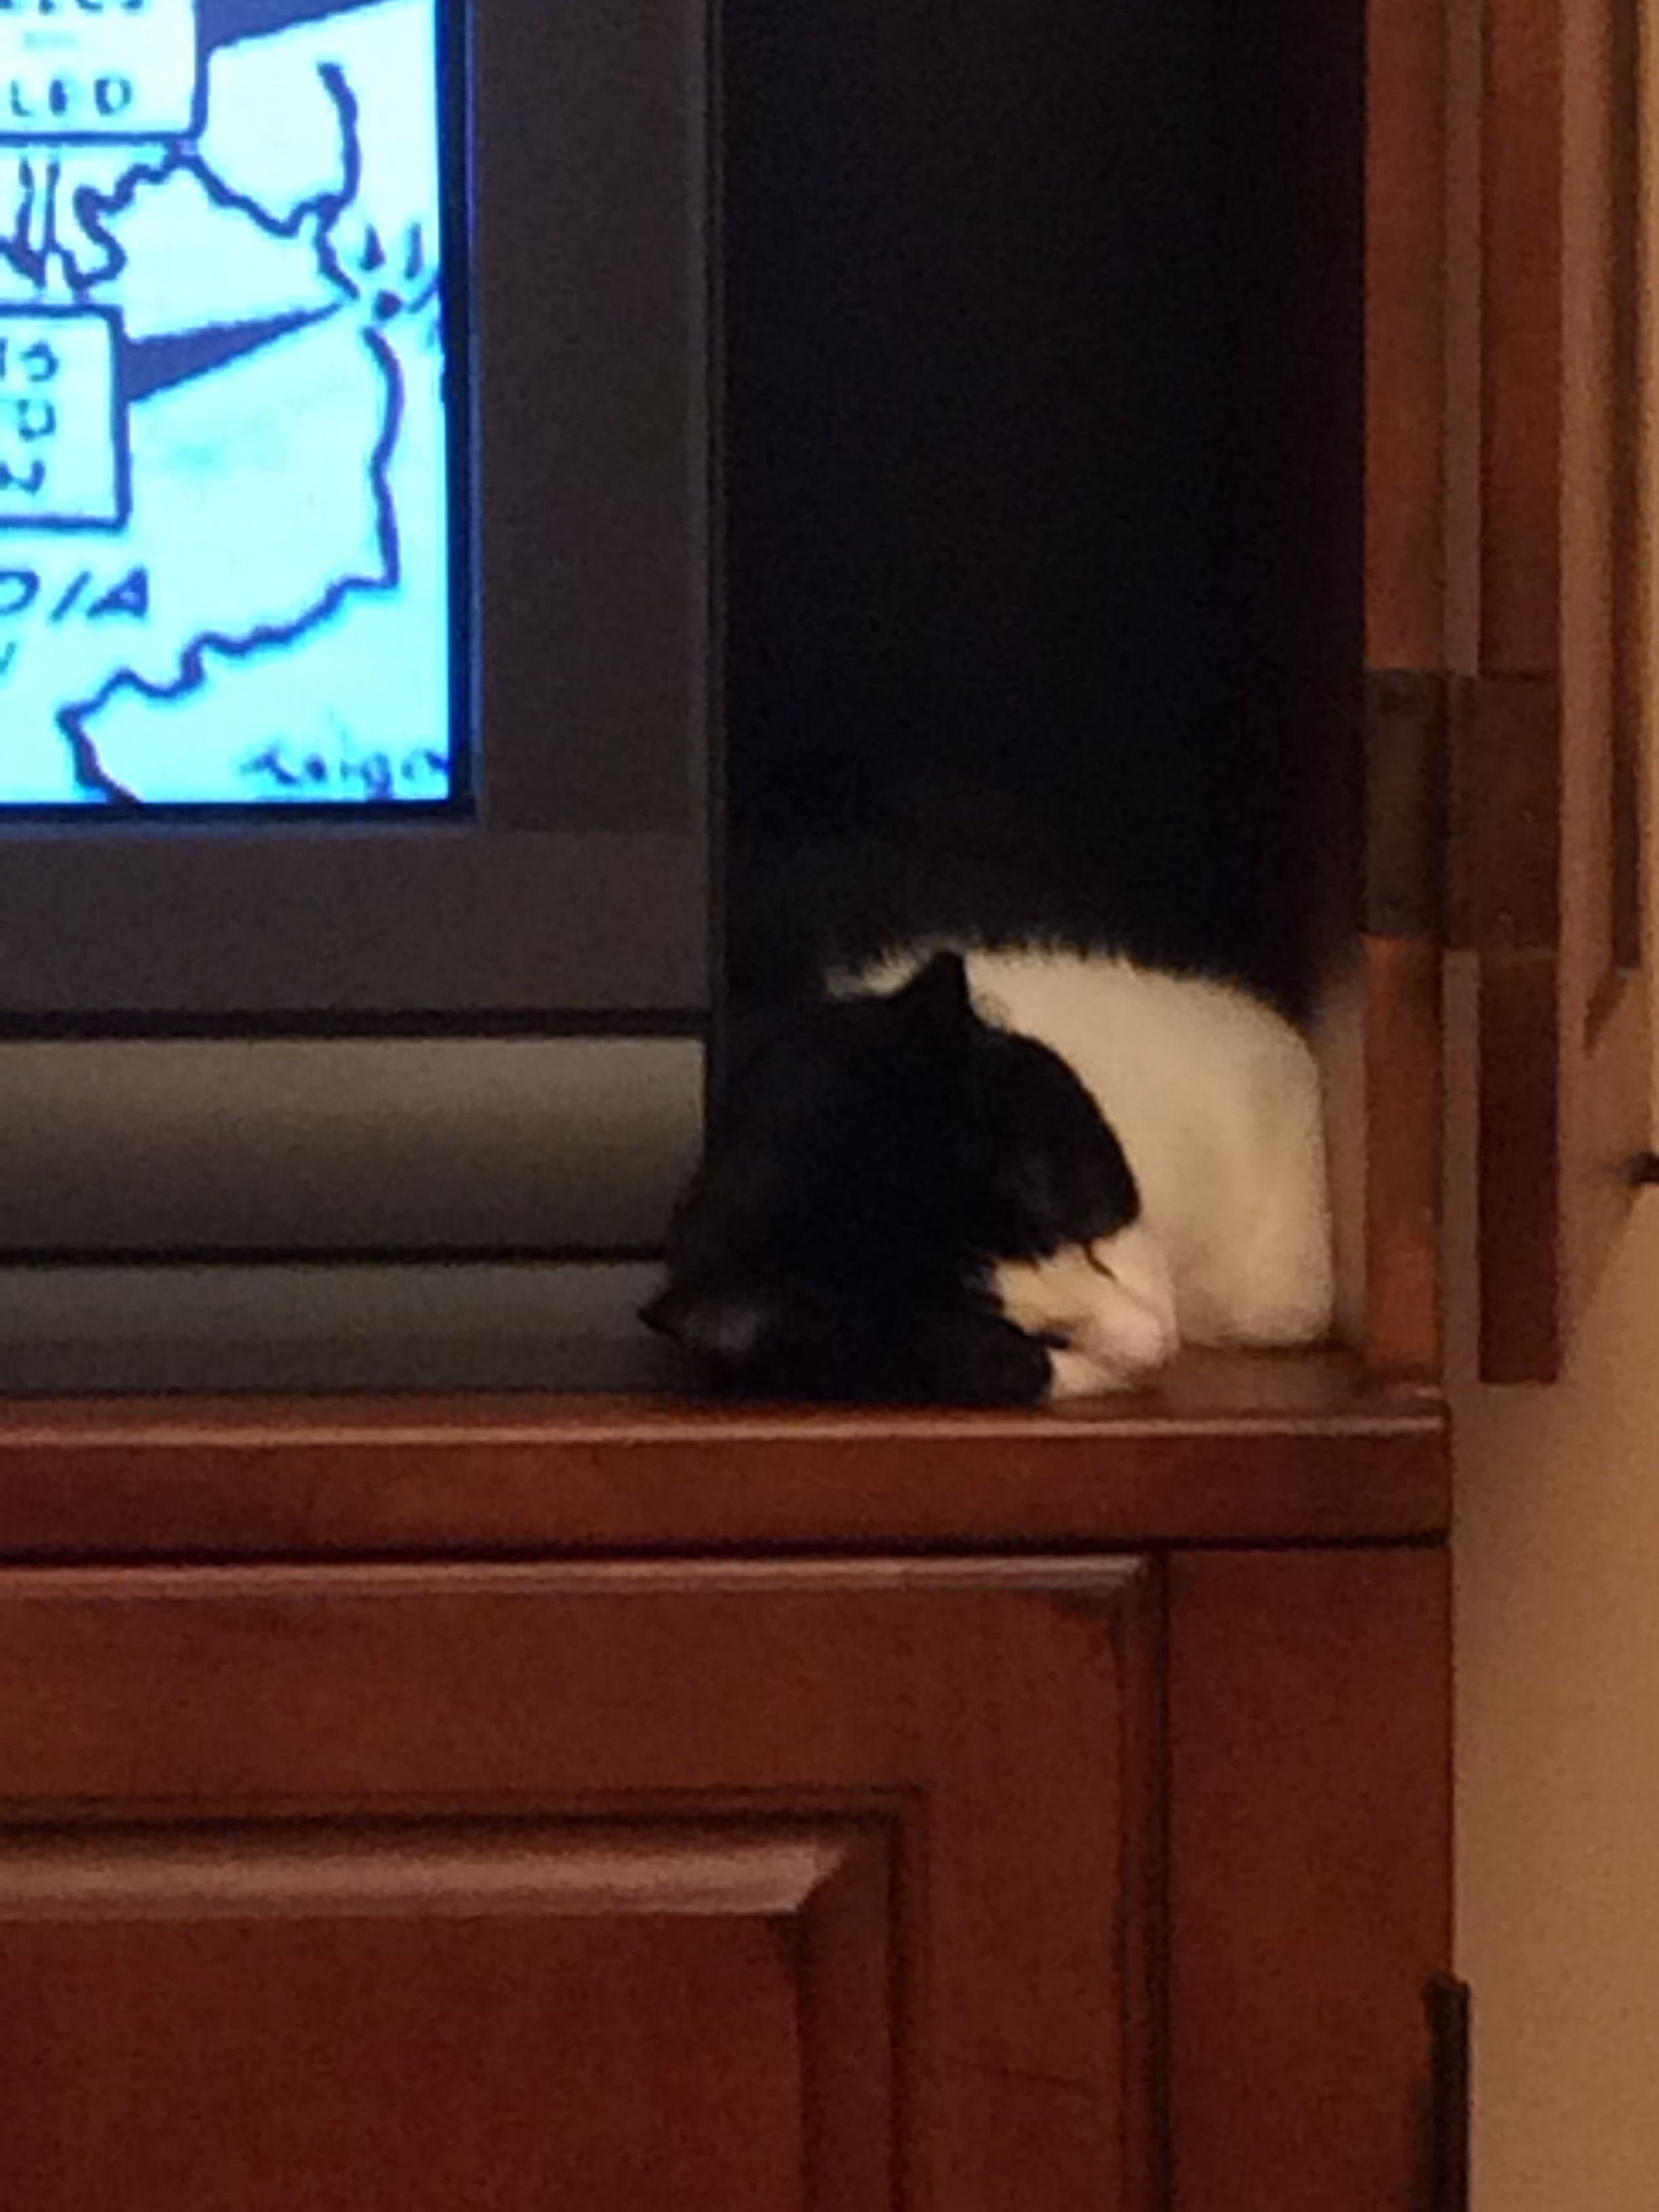 Etonnant Watching Television Makes Bailey A Fine Cat So Very Tired.